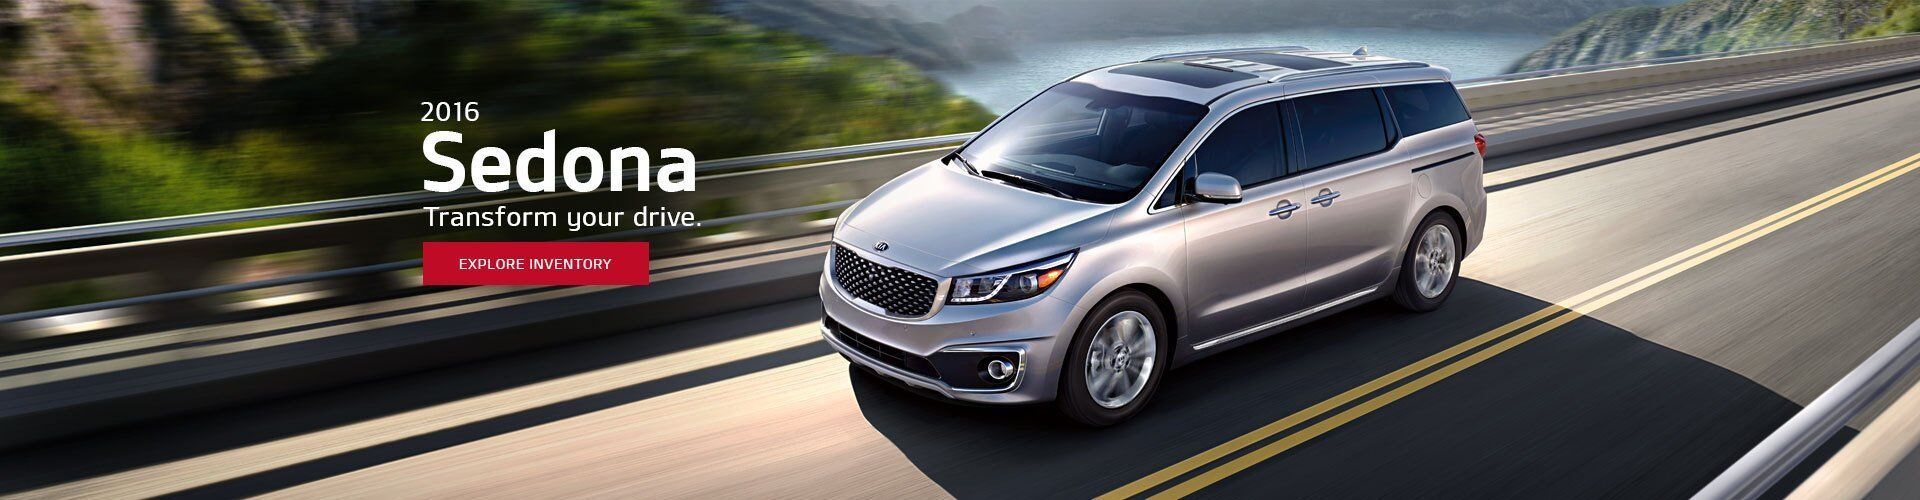 New Kia Sedona at Kia of Muncie